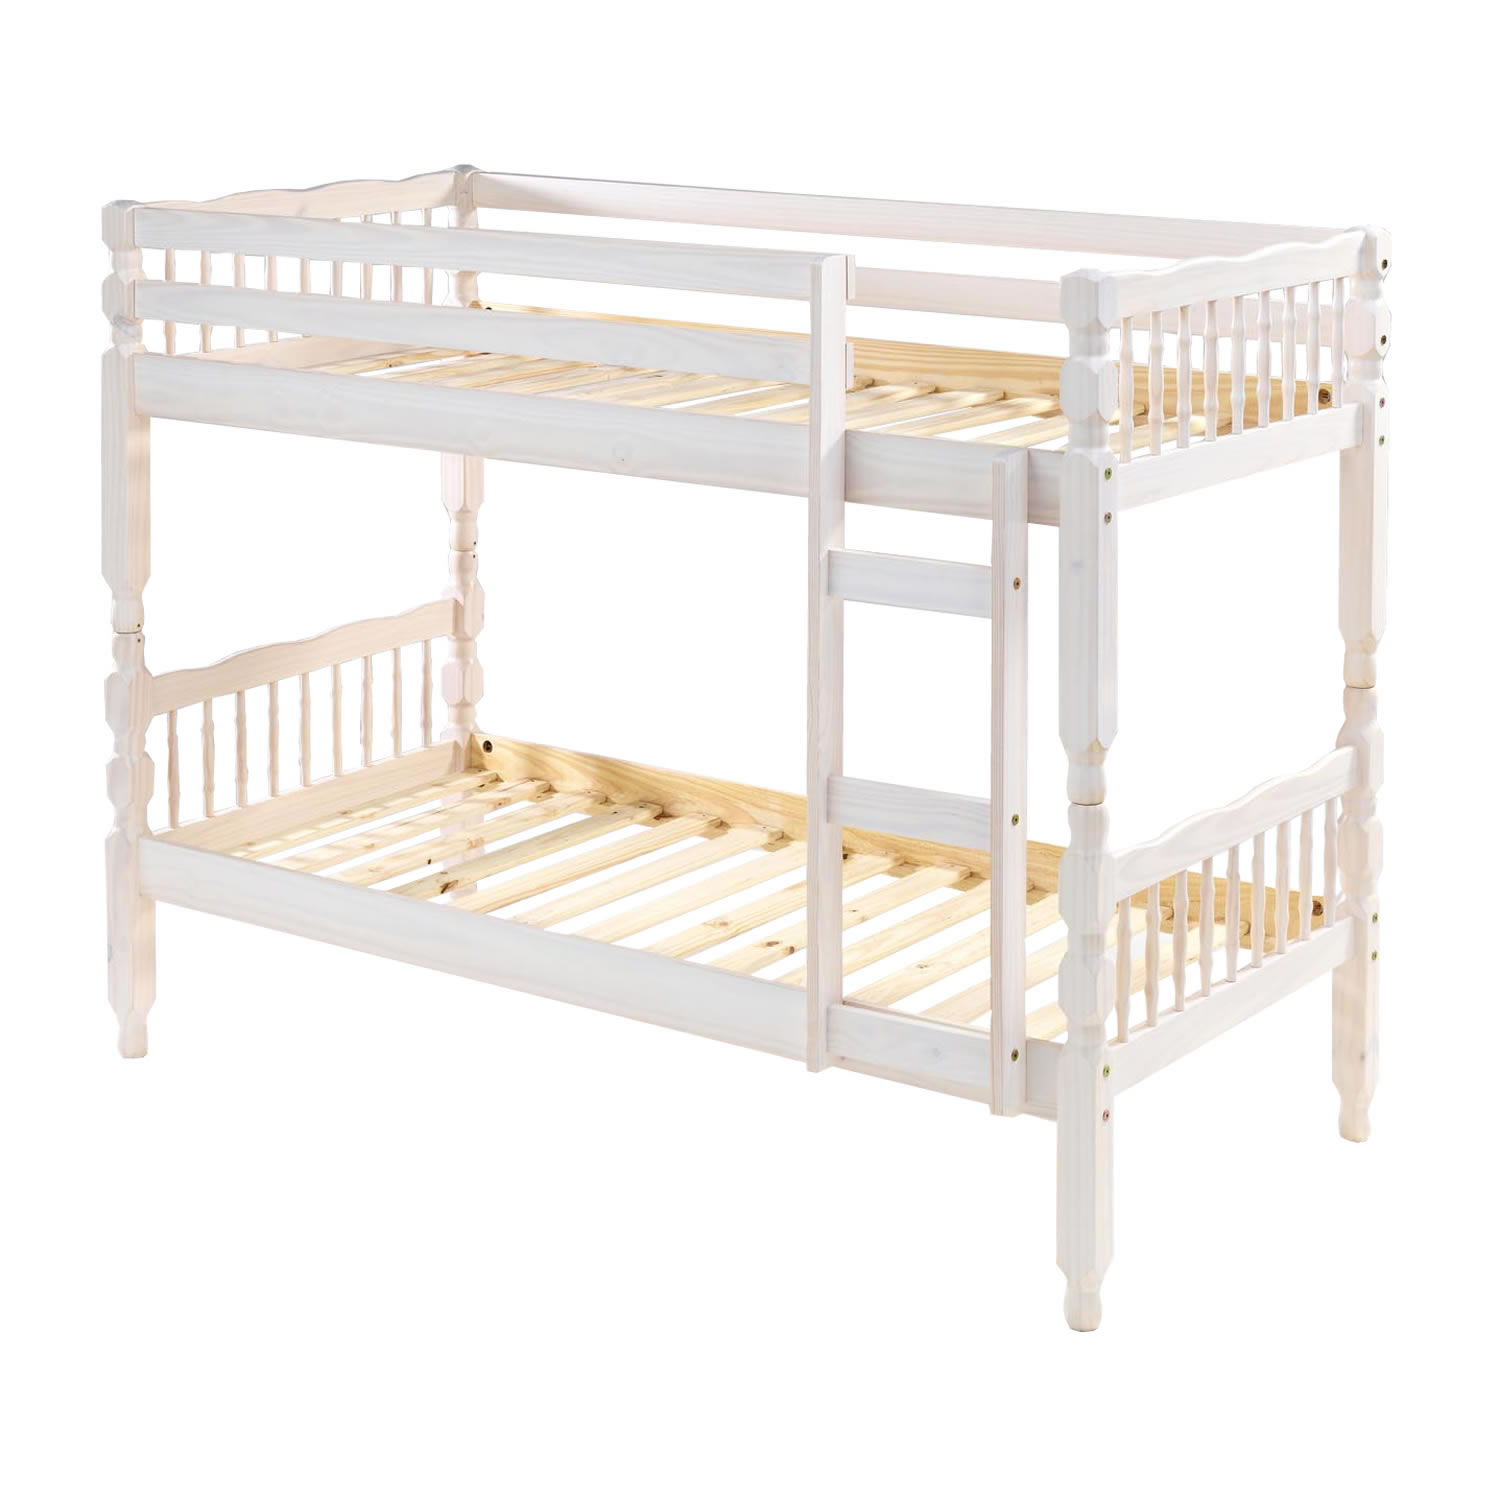 Image of: White Bunk Beds Wooden